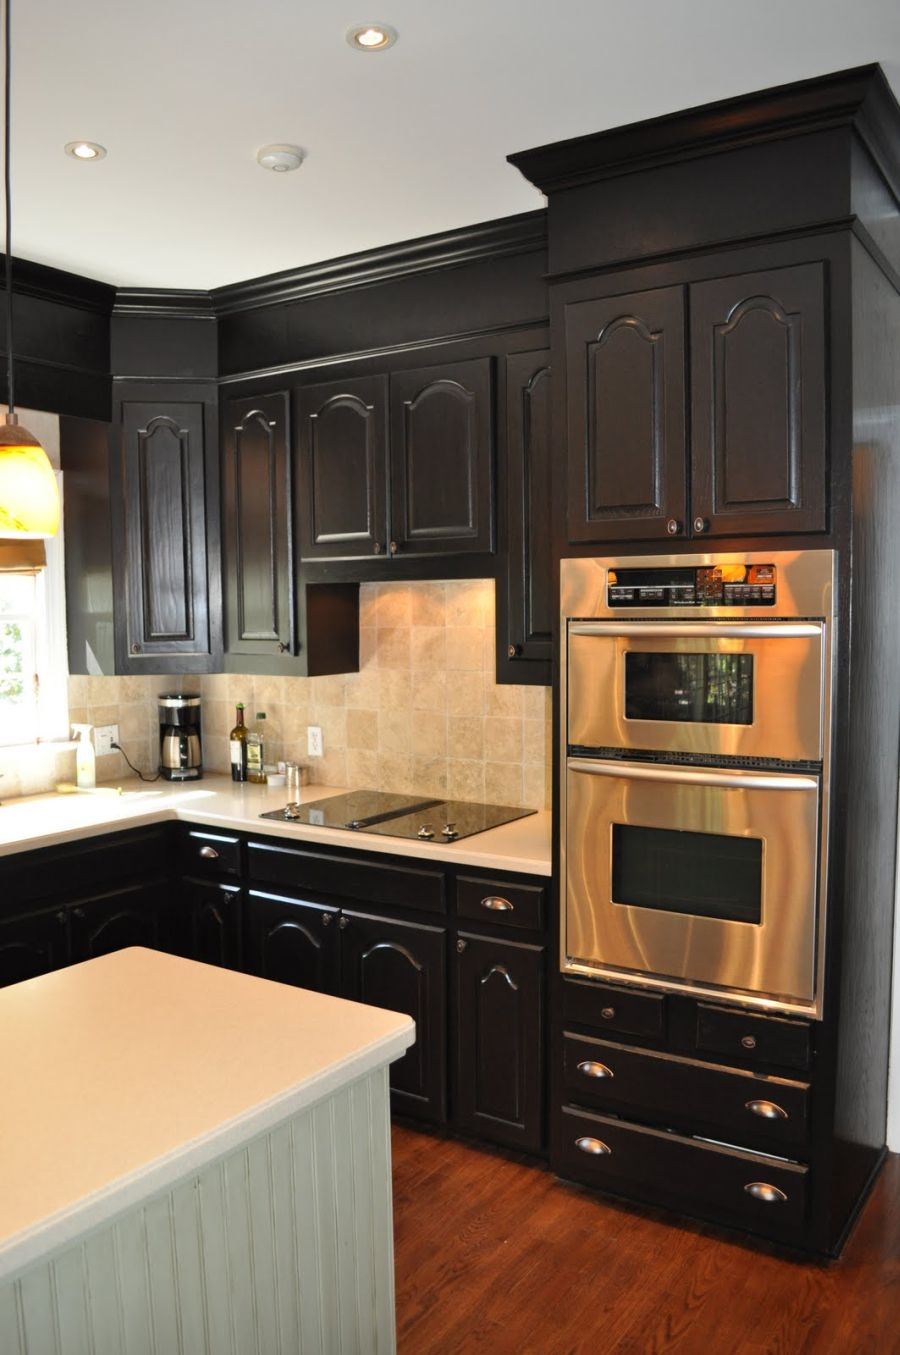 creative cabinets brown dark cool laundry cabinet wood with black ideas stained hinges room grey kitchen for cupboard refinish and incredible paint backsplash small light best colors bronze cupboards color